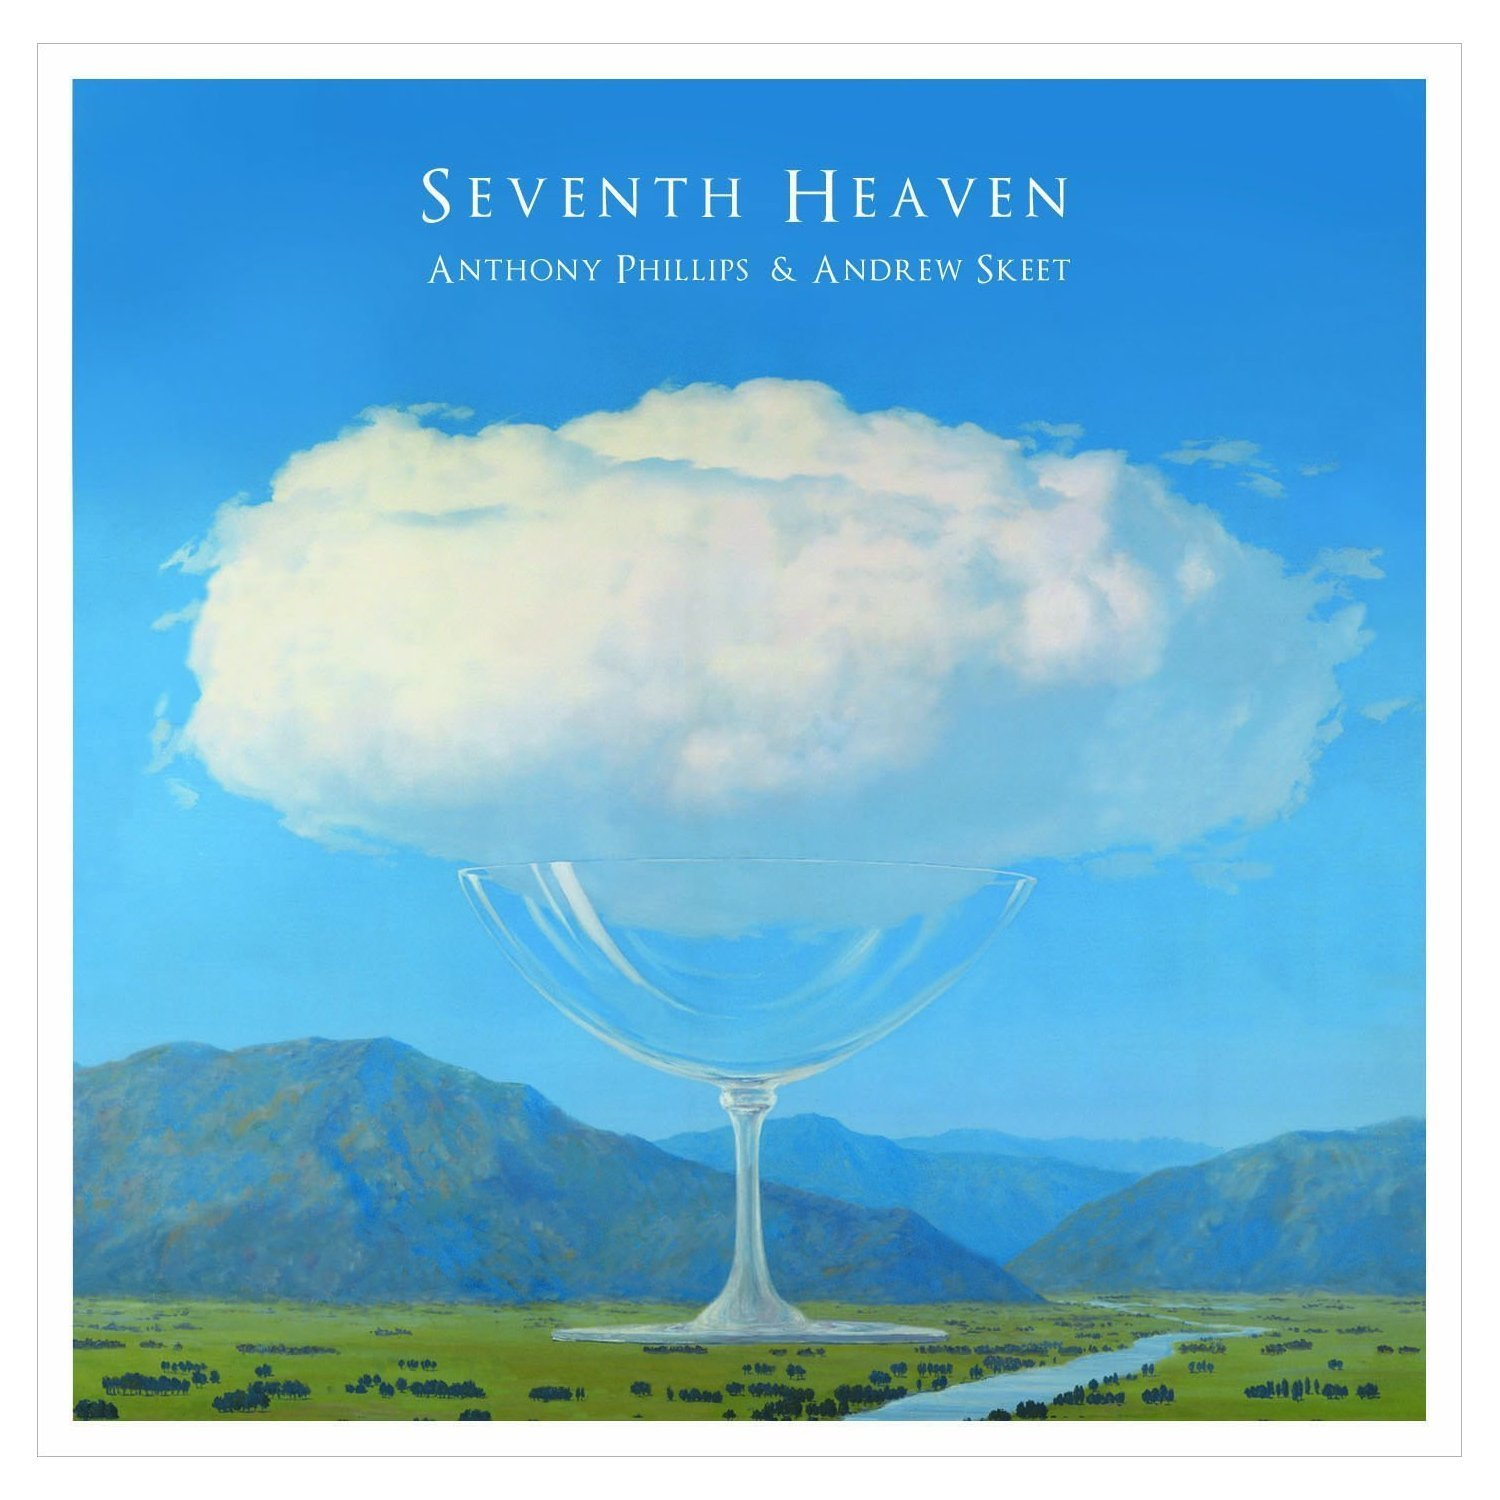 Anthony Phillips & Andrew Skeet — Seventh Heaven